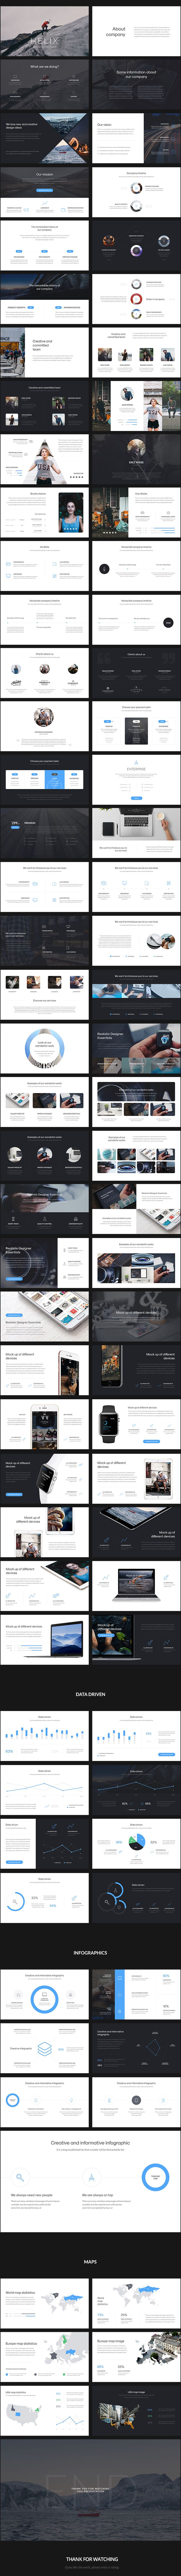 Helix is a multipurpose keynote/powerpoint template. When creating this presentation, I focused on ease of use for the bought this presentation. You can easily make any adjustments, changing from color to insert the images you want. I hope you like this w…